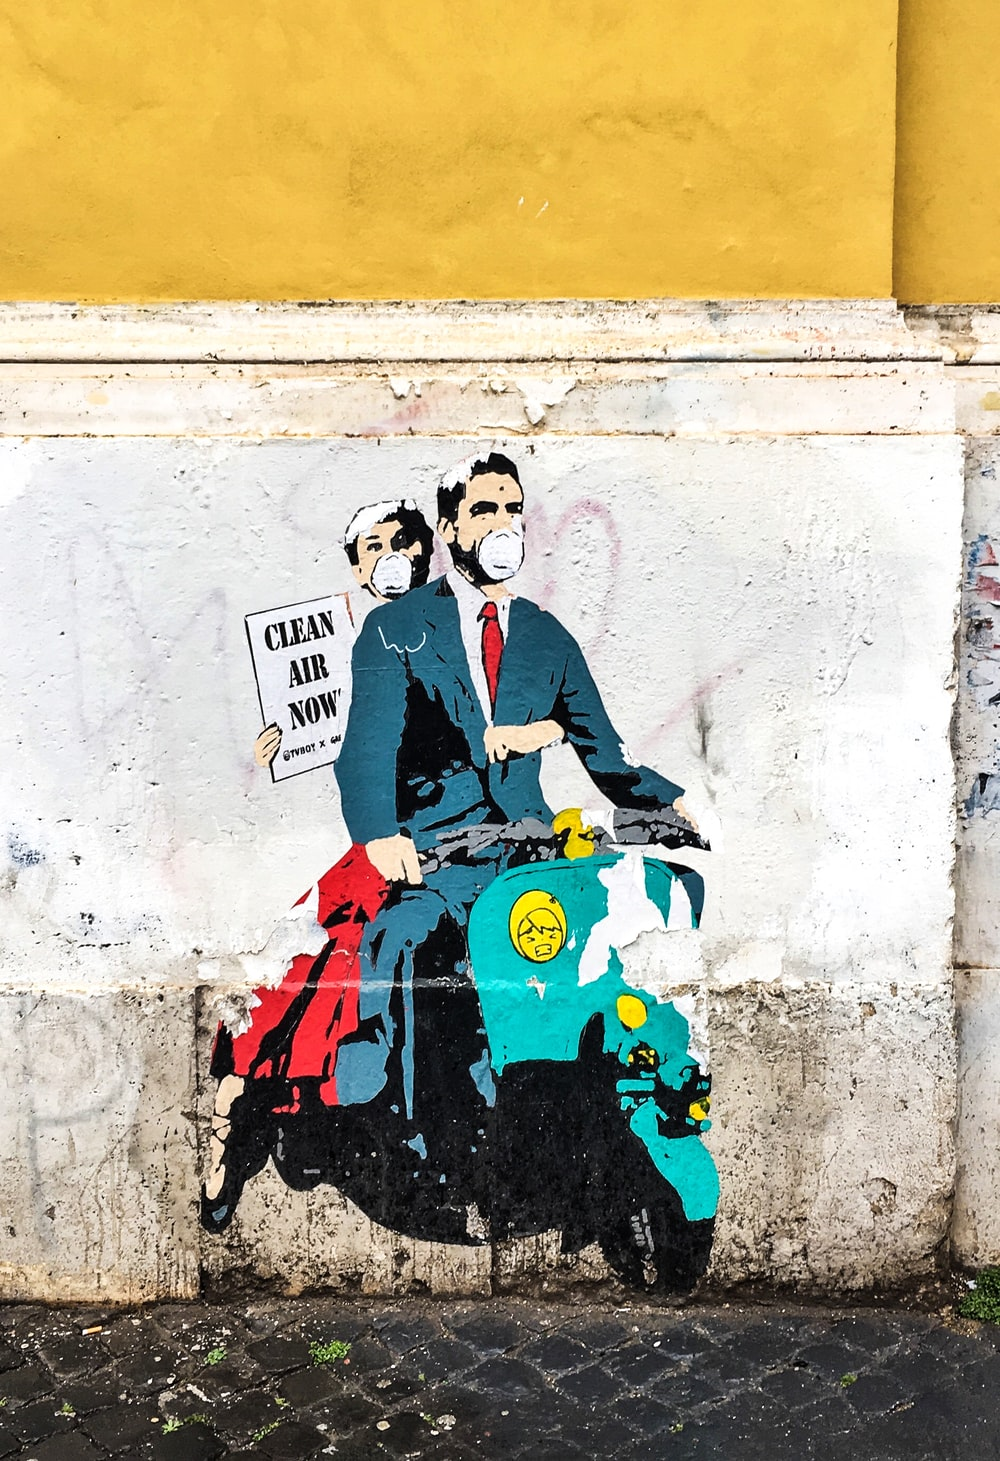 man in black jacket riding on red motorcycle